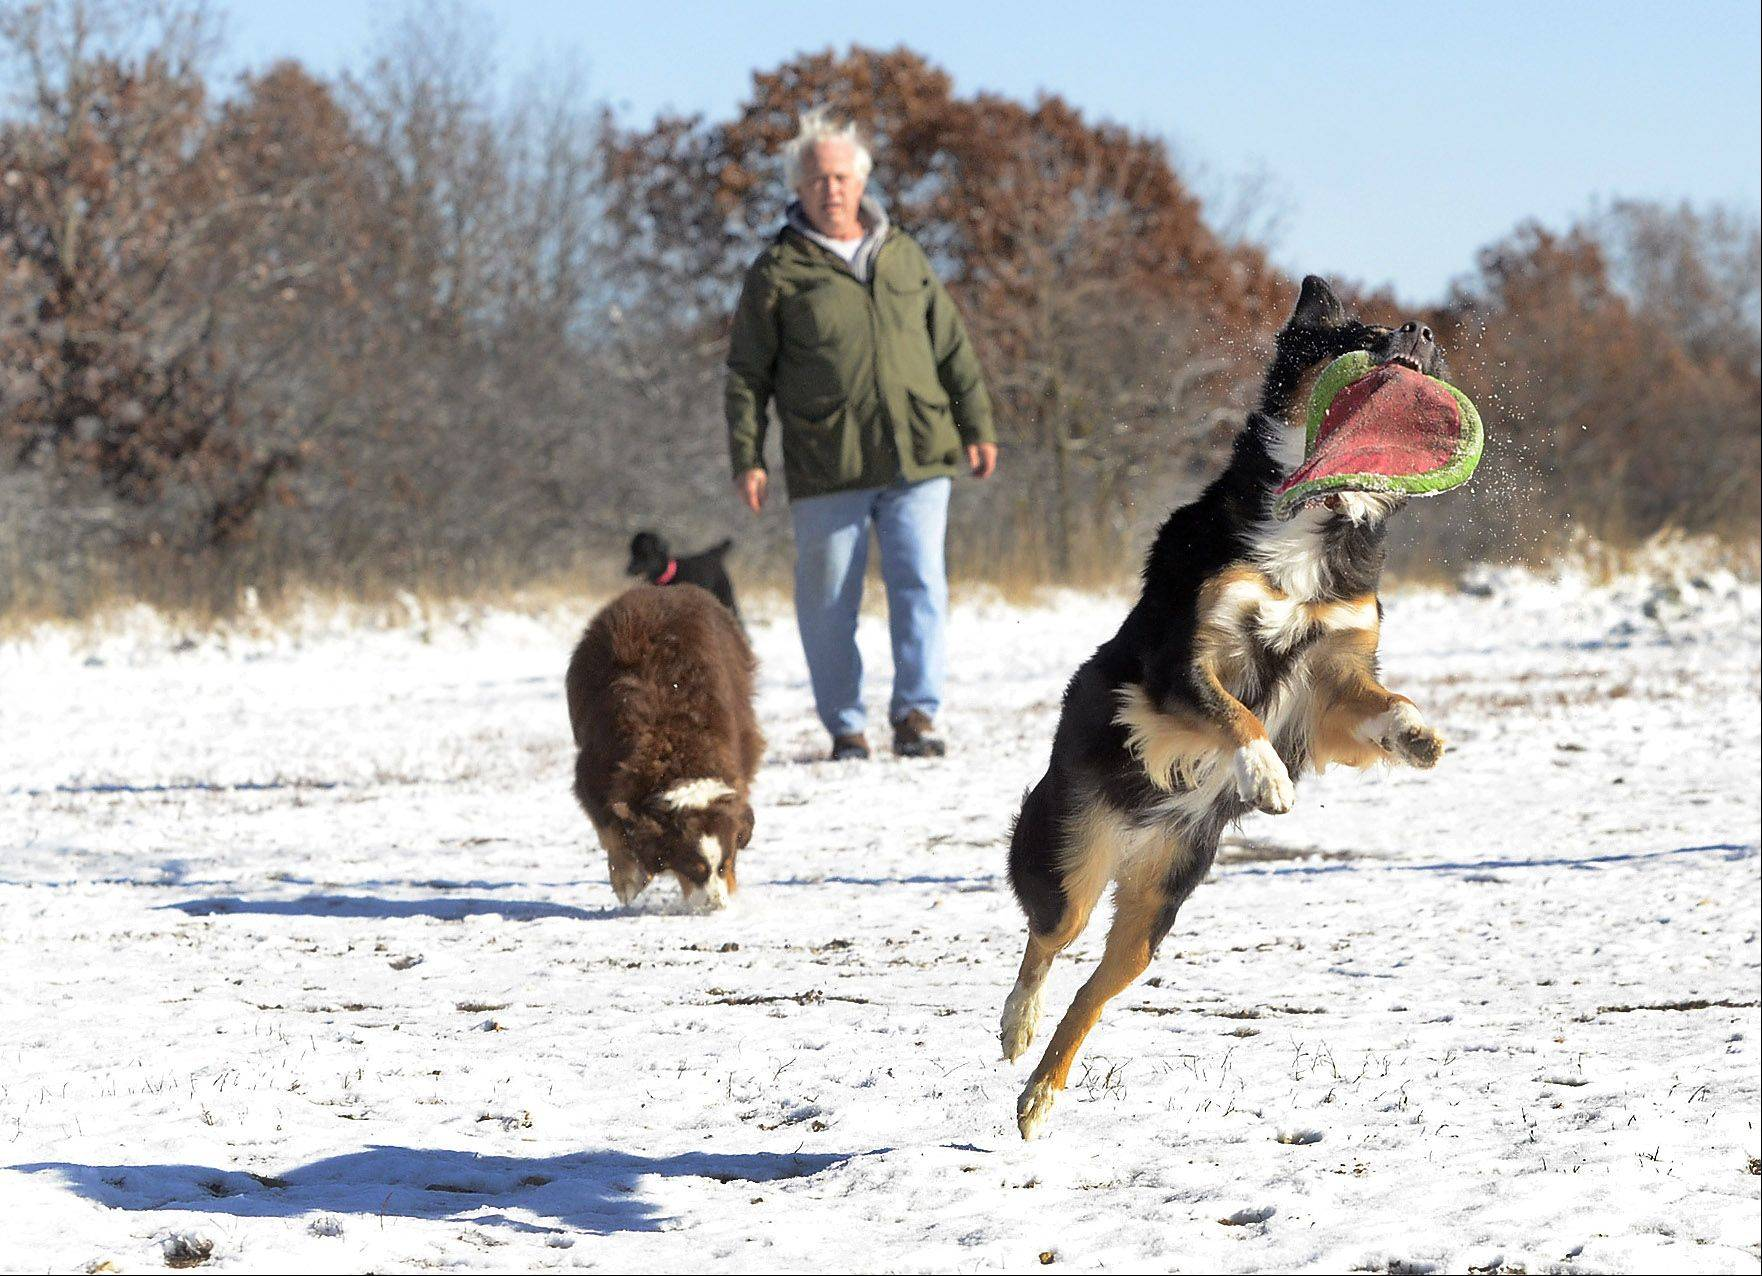 Jim Walton, of Libertyville, gives his dogs, Liesl and Penne, a workout at the Lakewood Dog Exercise Area, Lake County Forest Preserve, in Wauconda. Here he has one of his Australian Shepards, Liesl, jumping for a Frisbee.